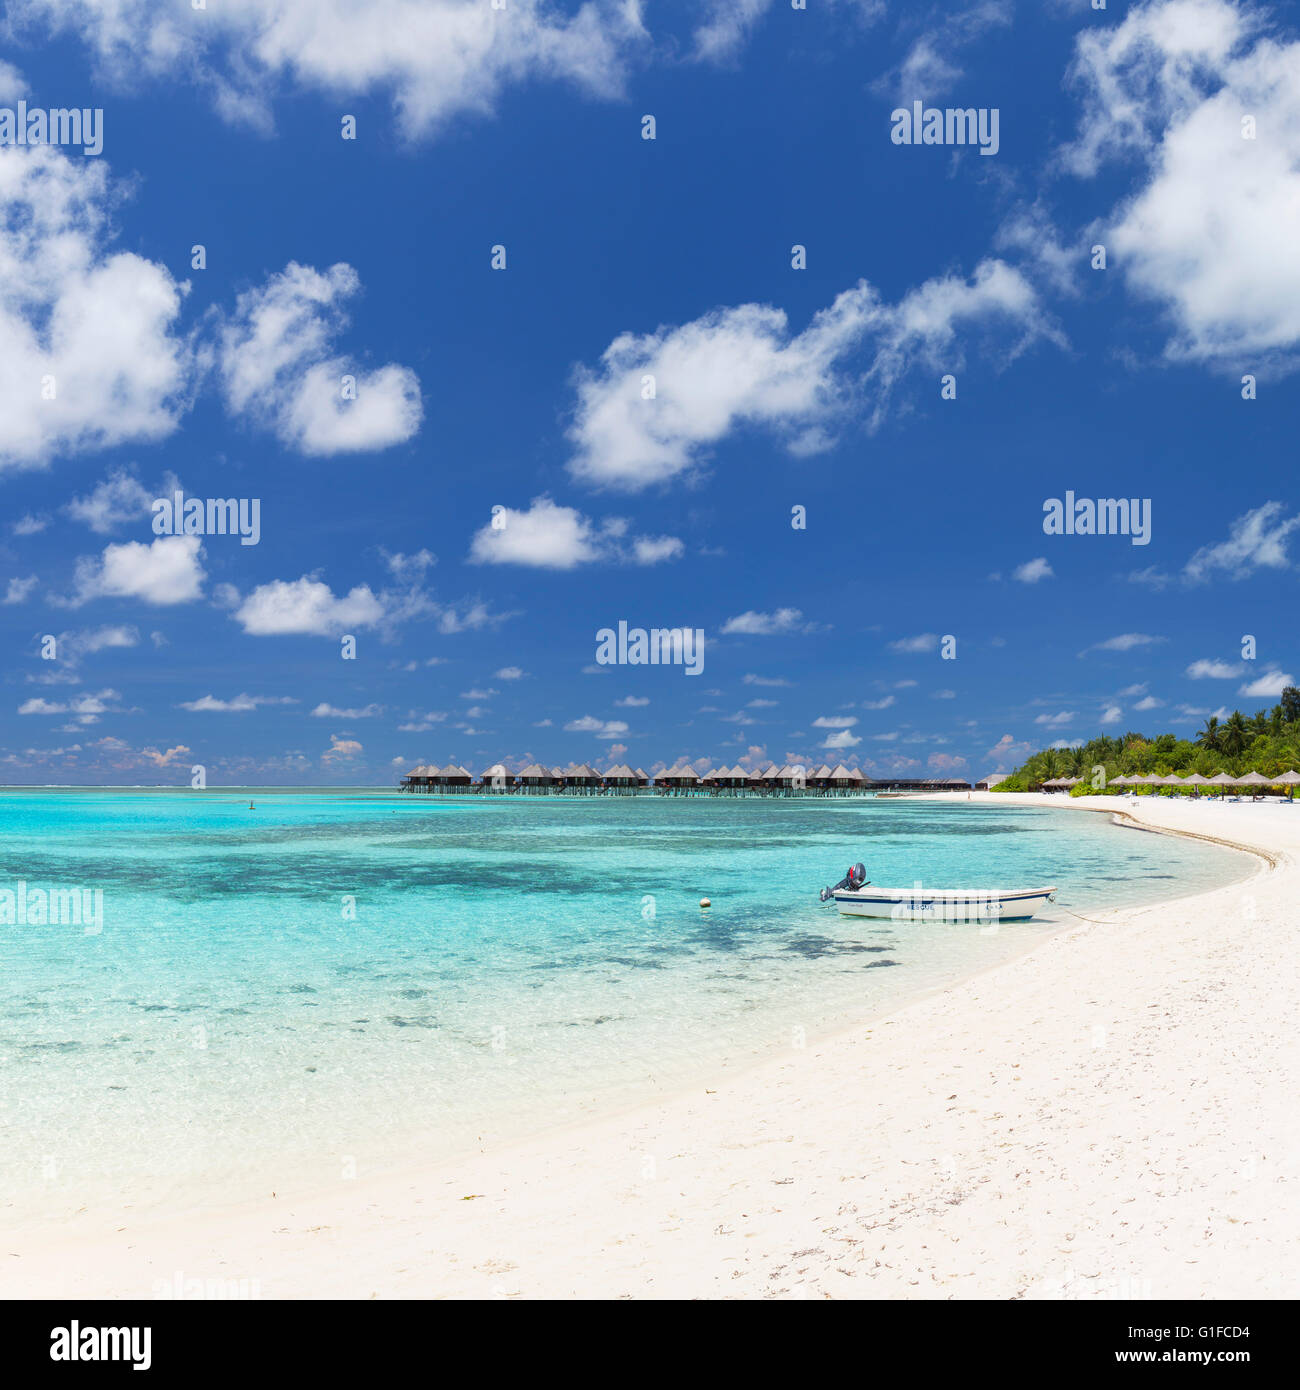 Olhuveli Beach And Spa Resort South Male Atoll